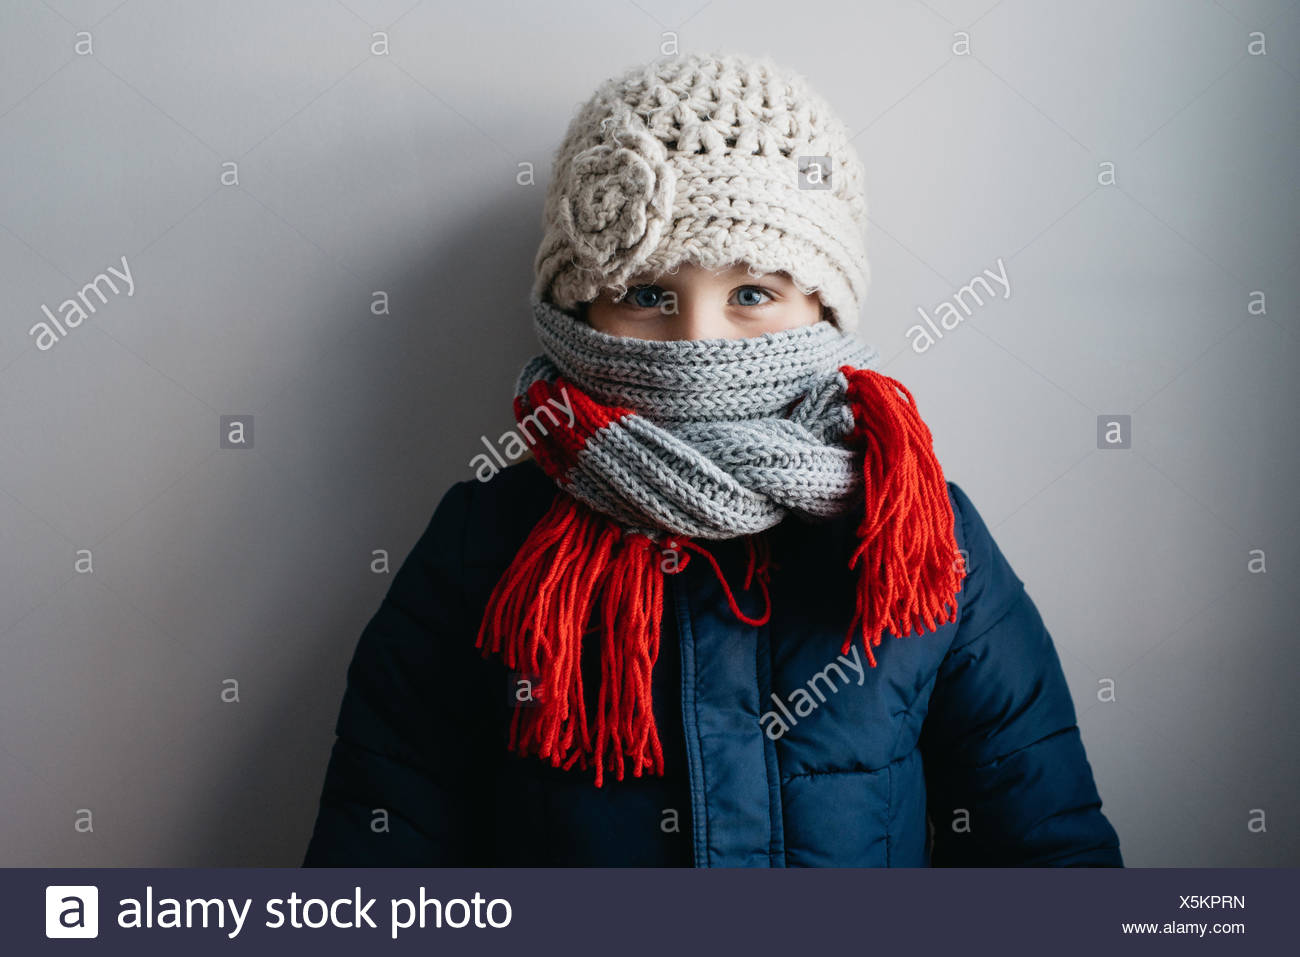 Girl warmly wrapped up in woollen hat and scarf - Stock Image